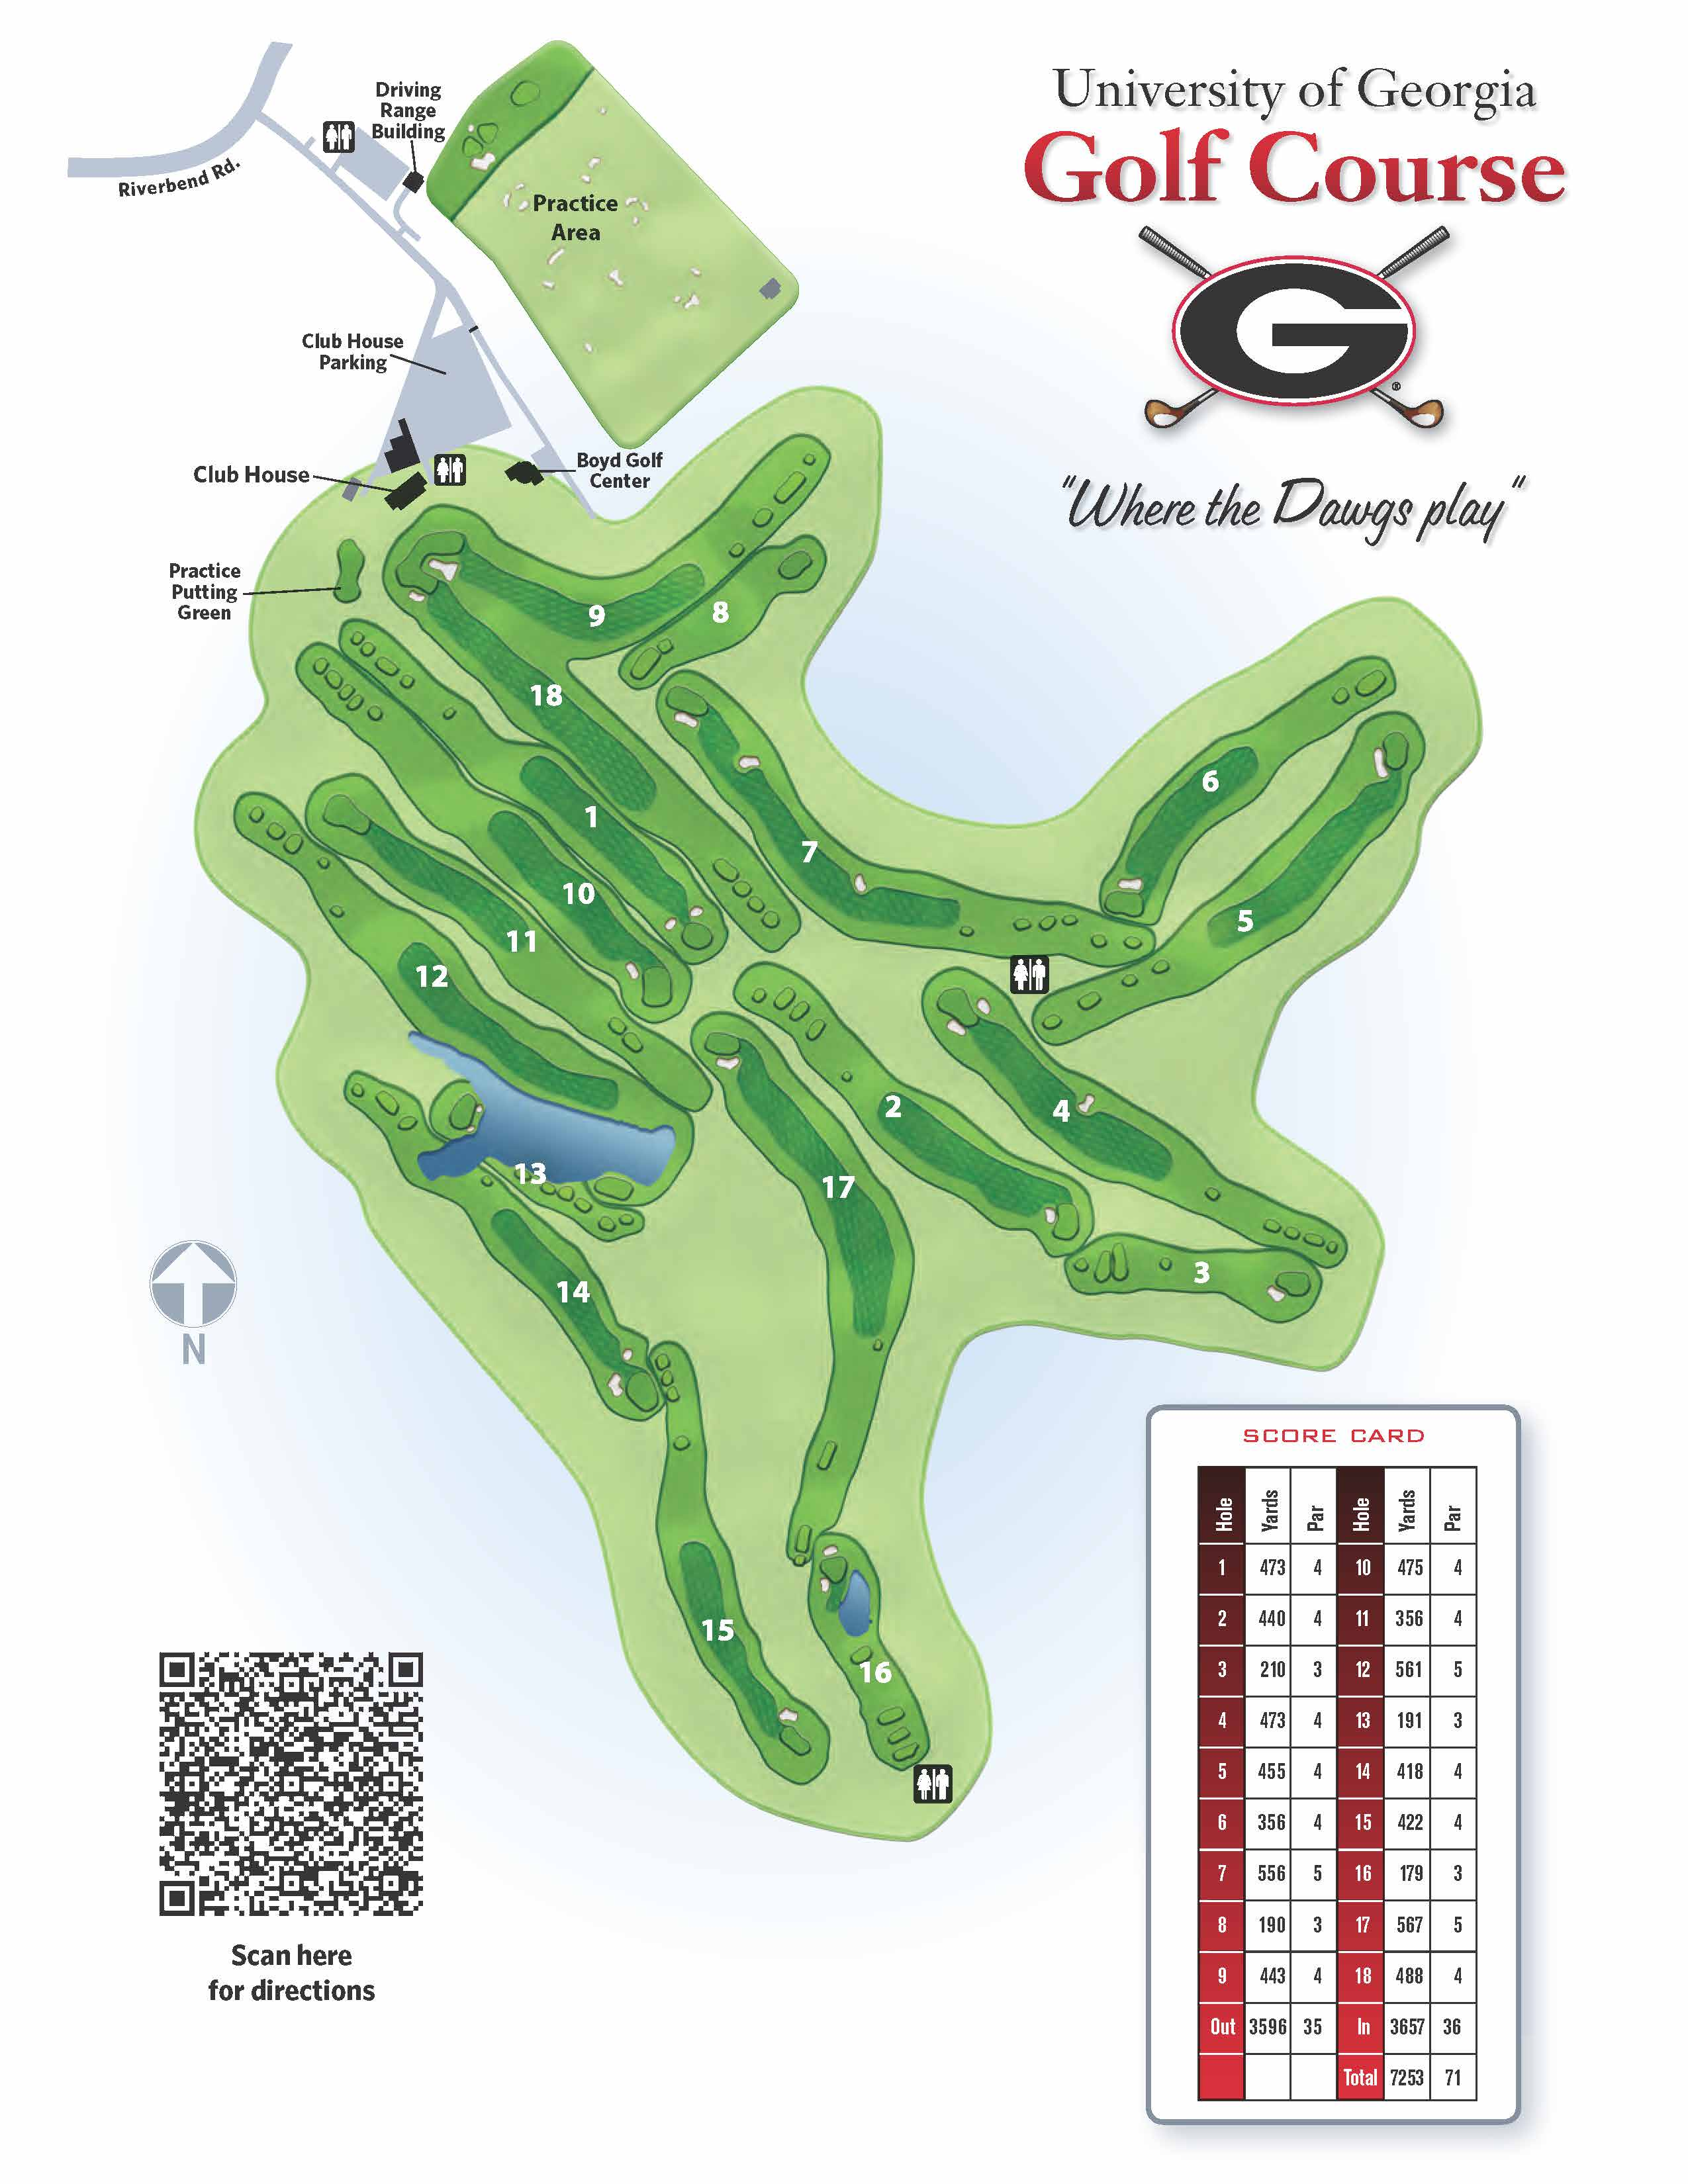 Map of the UGA Golf Course